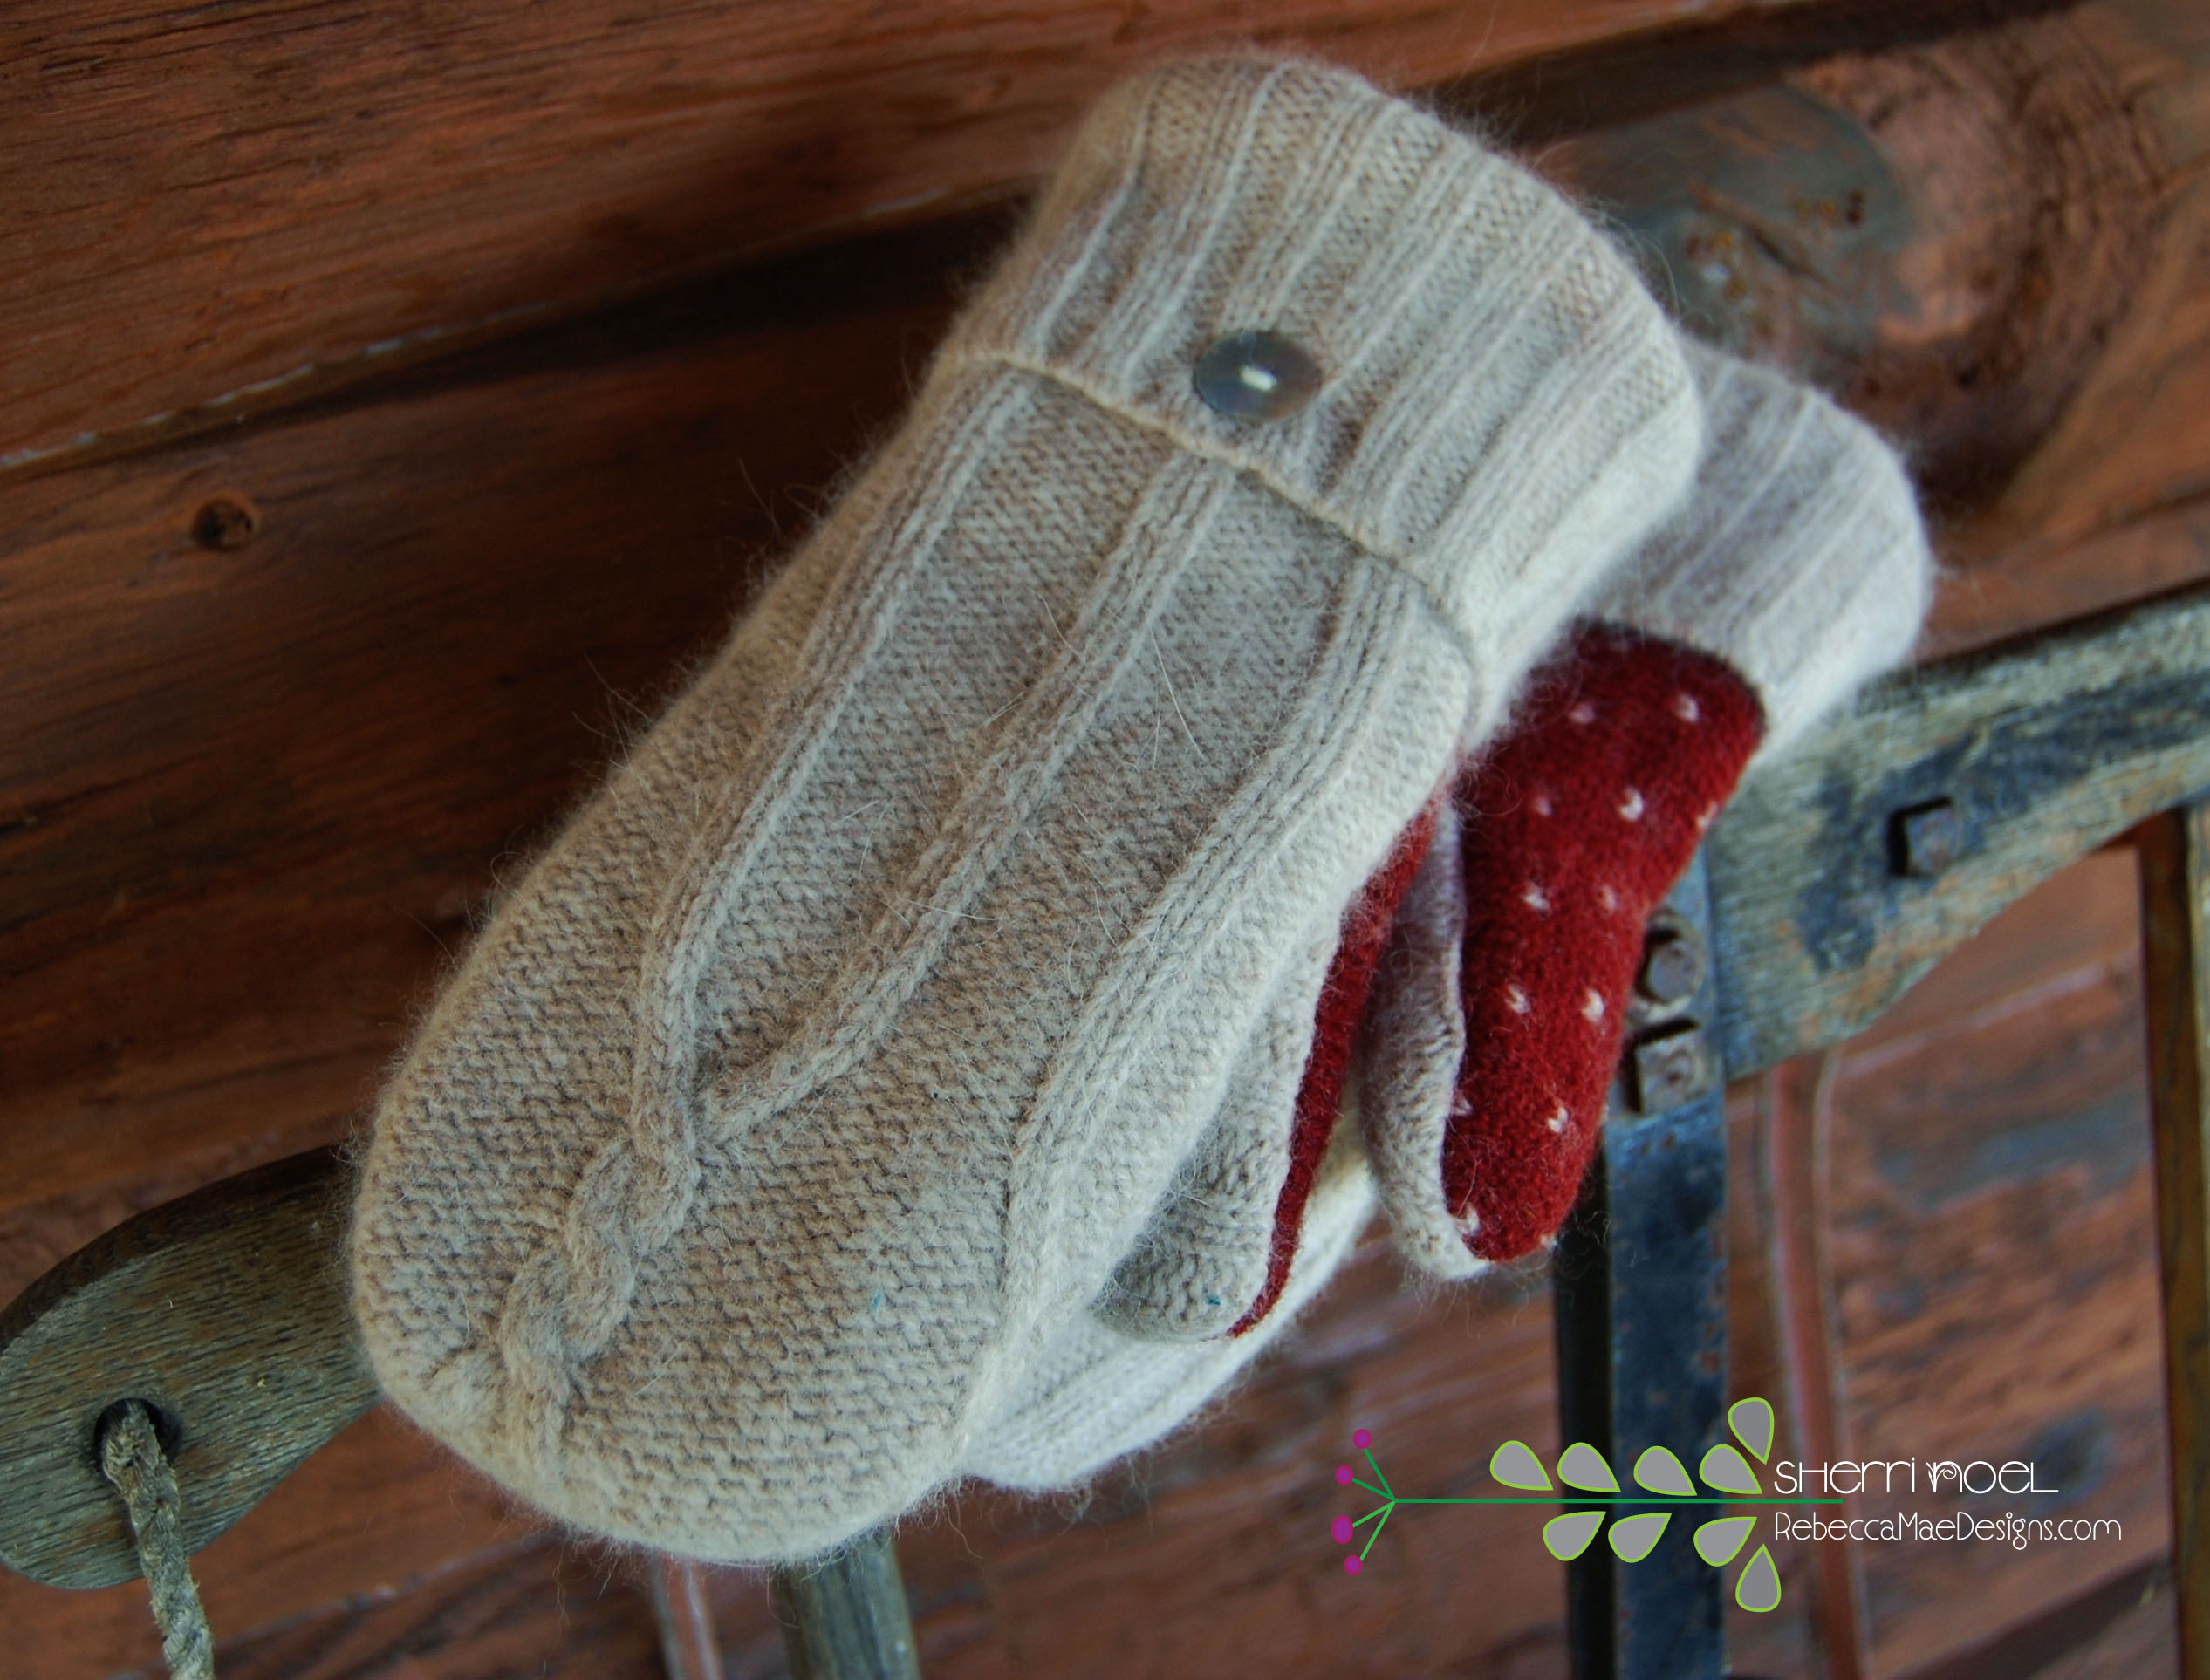 Making Mittens From Wool Sweaters